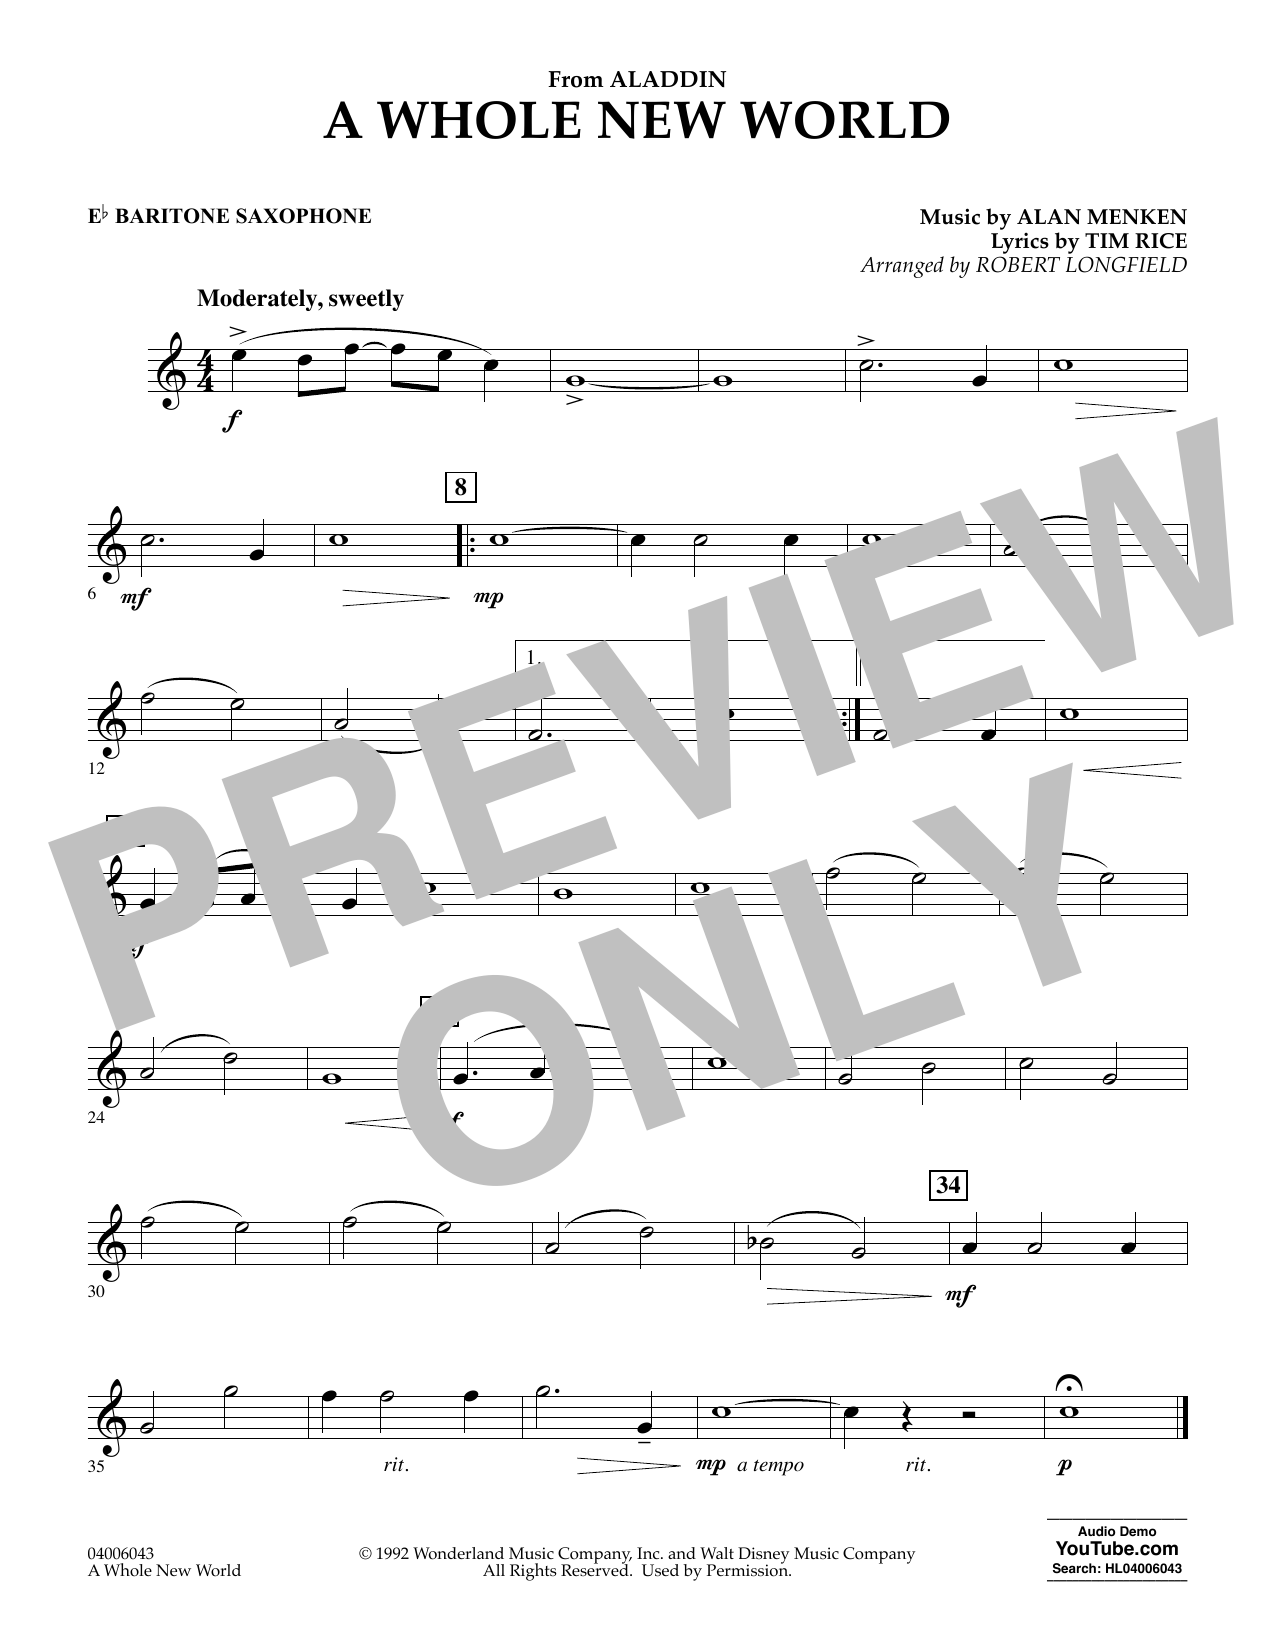 Download Alan Menken 'A Whole New World (from Aladdin) (arr. Robert Longfield) - Eb Baritone Saxophone' Digital Sheet Music Notes & Chords and start playing in minutes